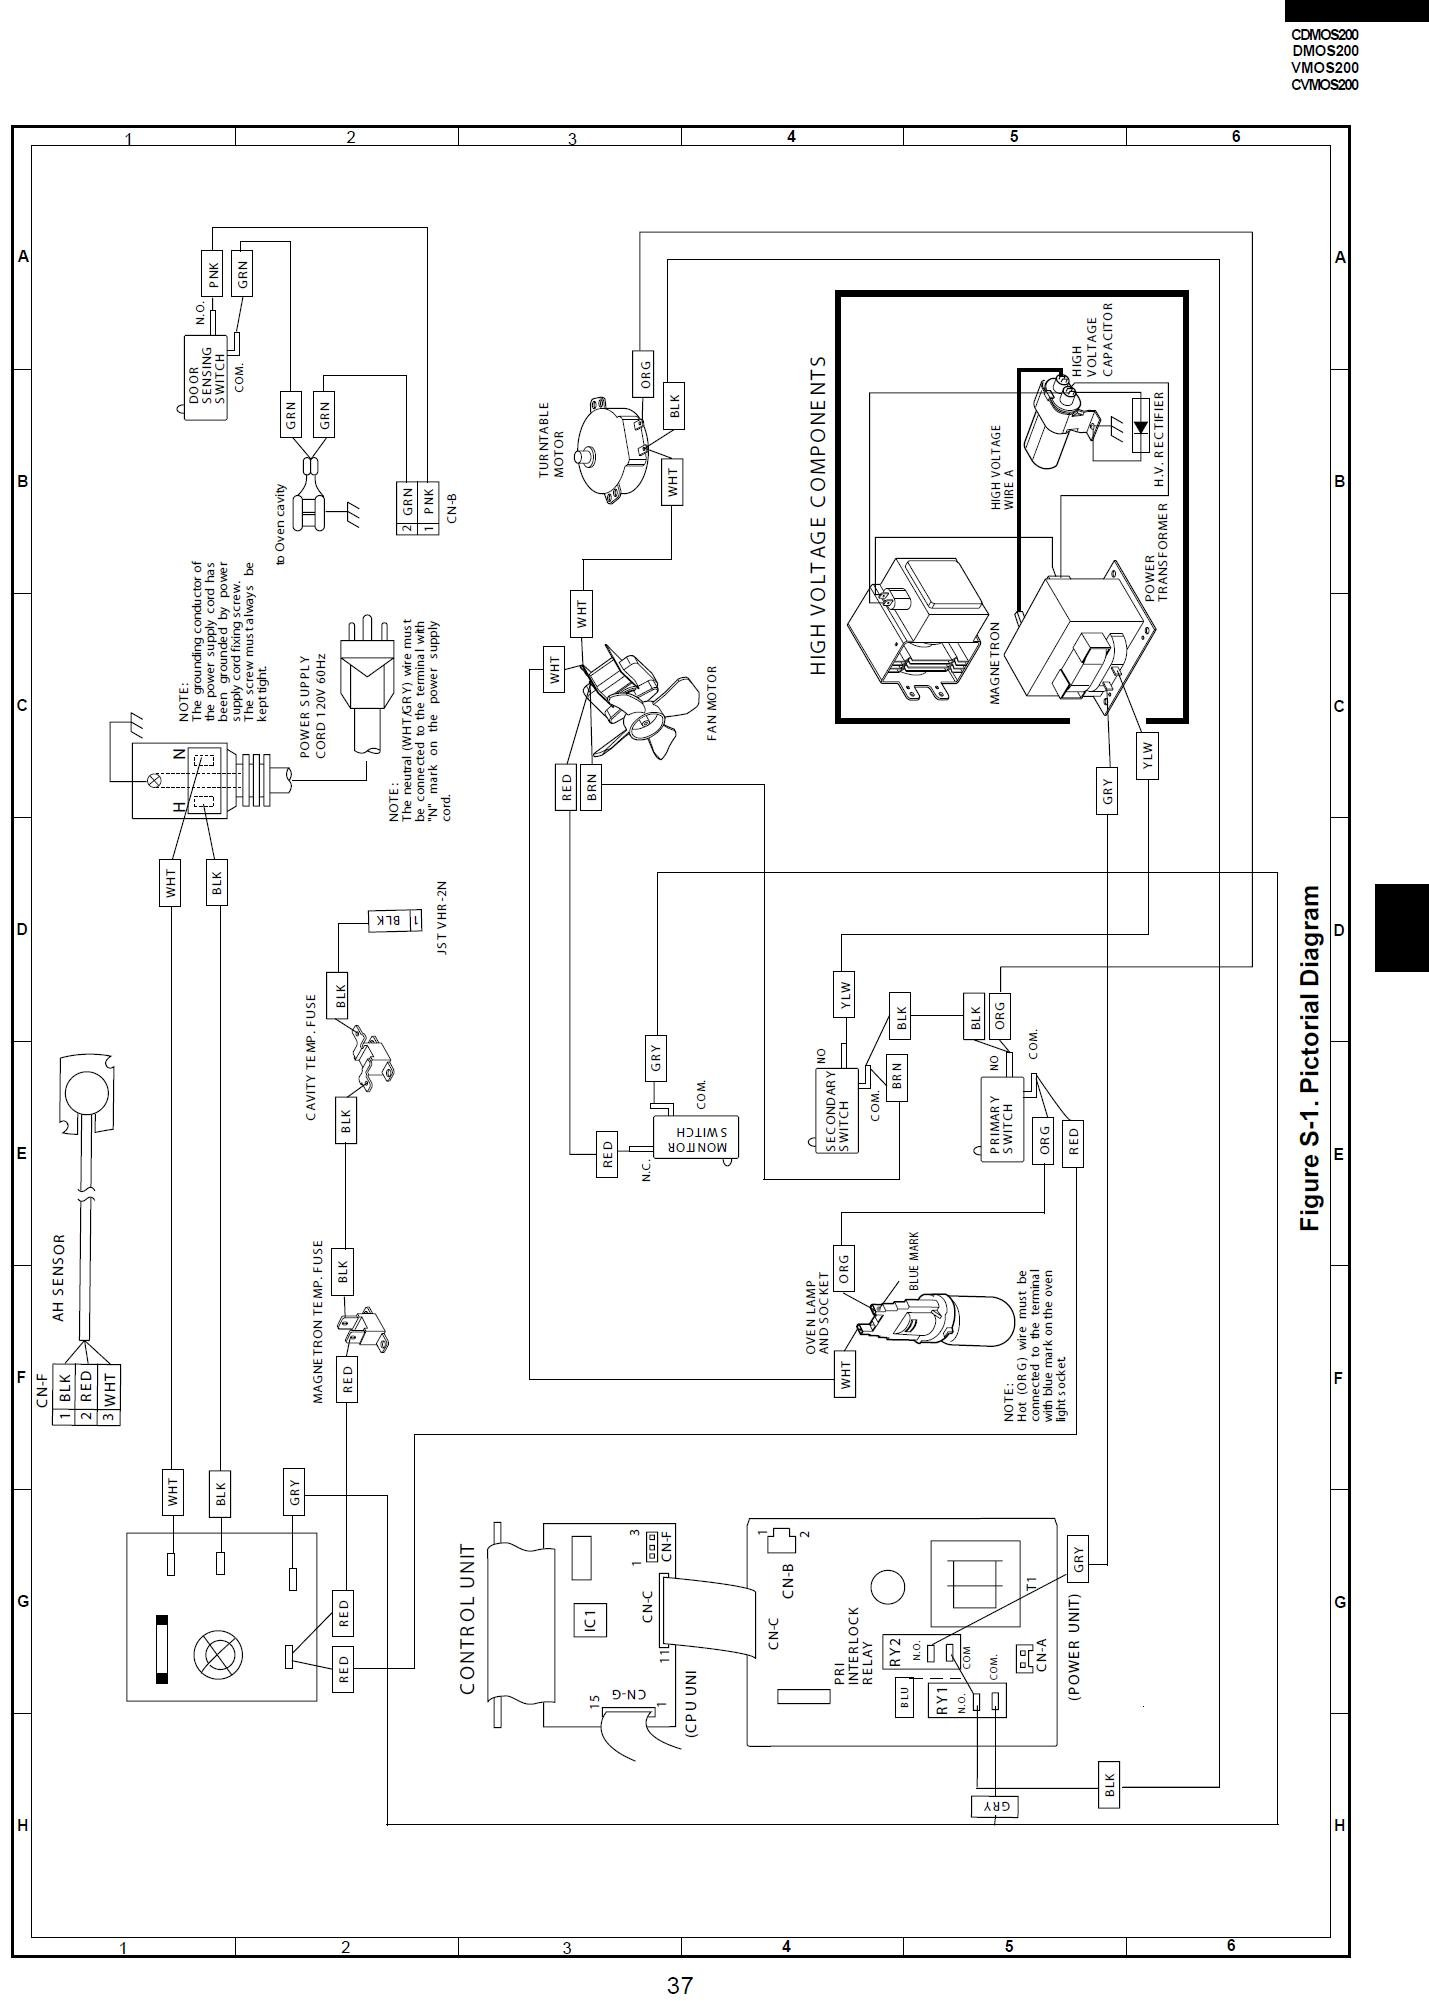 ge hotpoint stove wiring diagram hotpoint dryer diagram. Black Bedroom Furniture Sets. Home Design Ideas